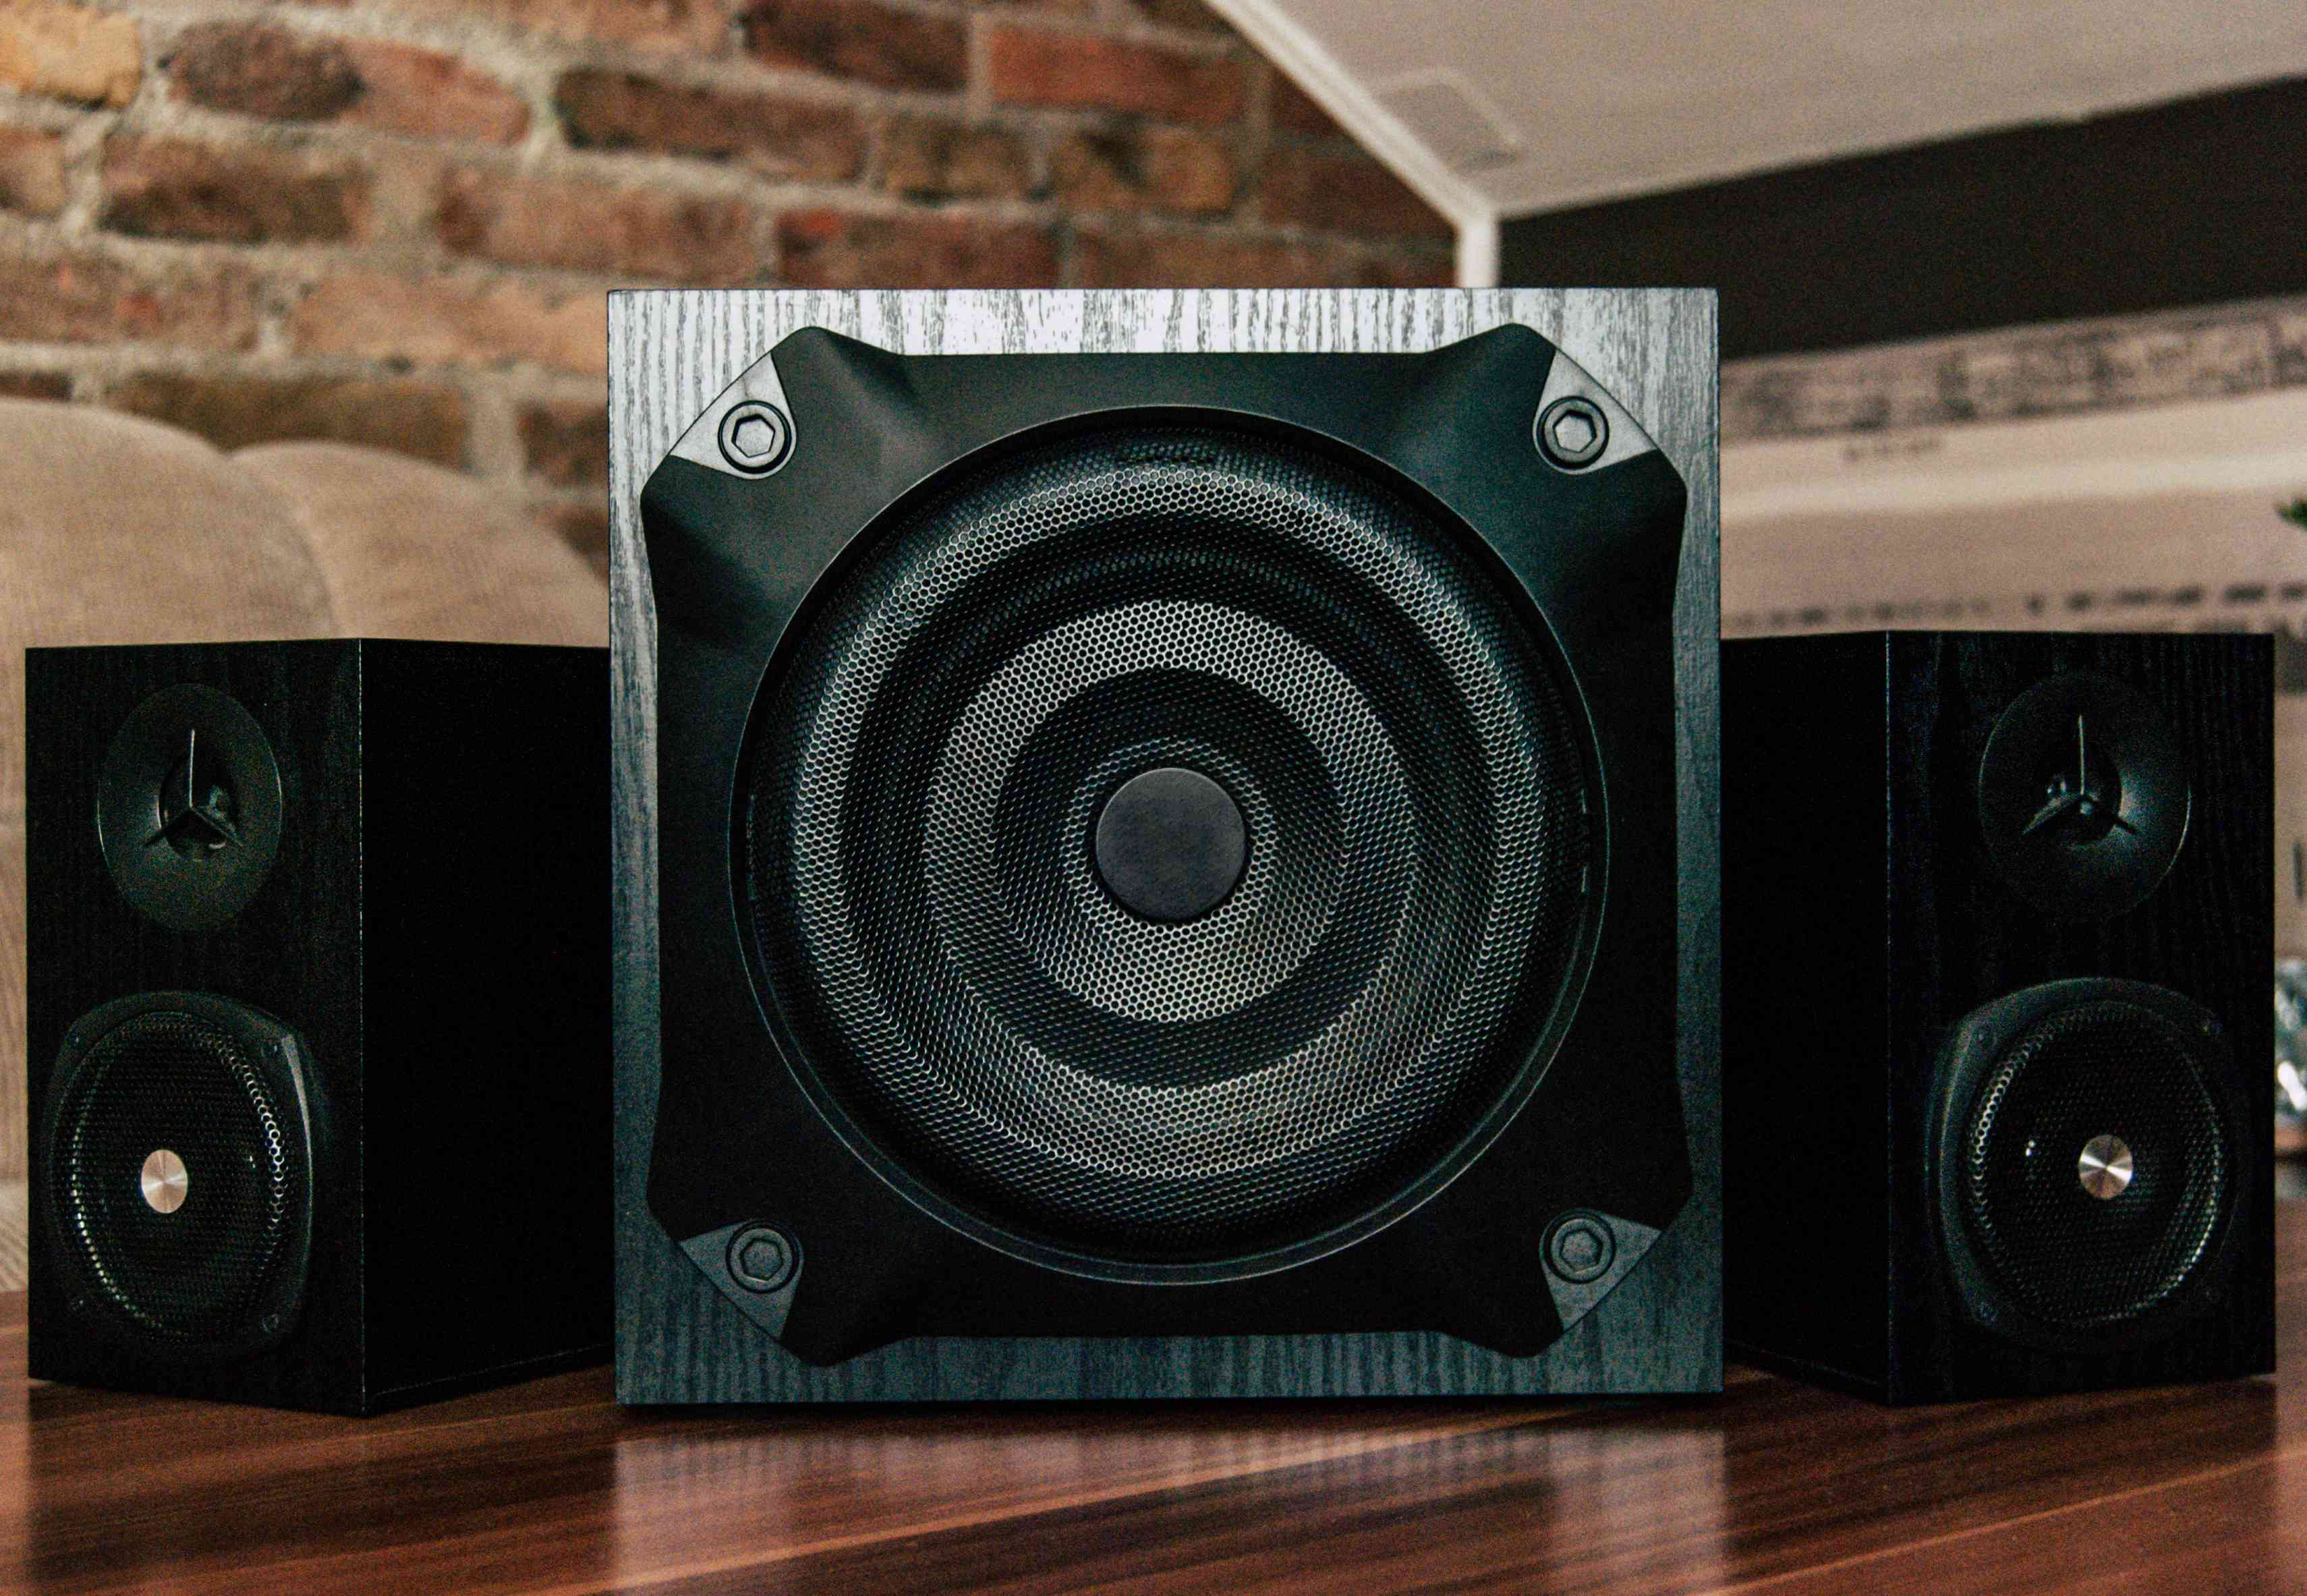 Black sub-woofer and two speakers